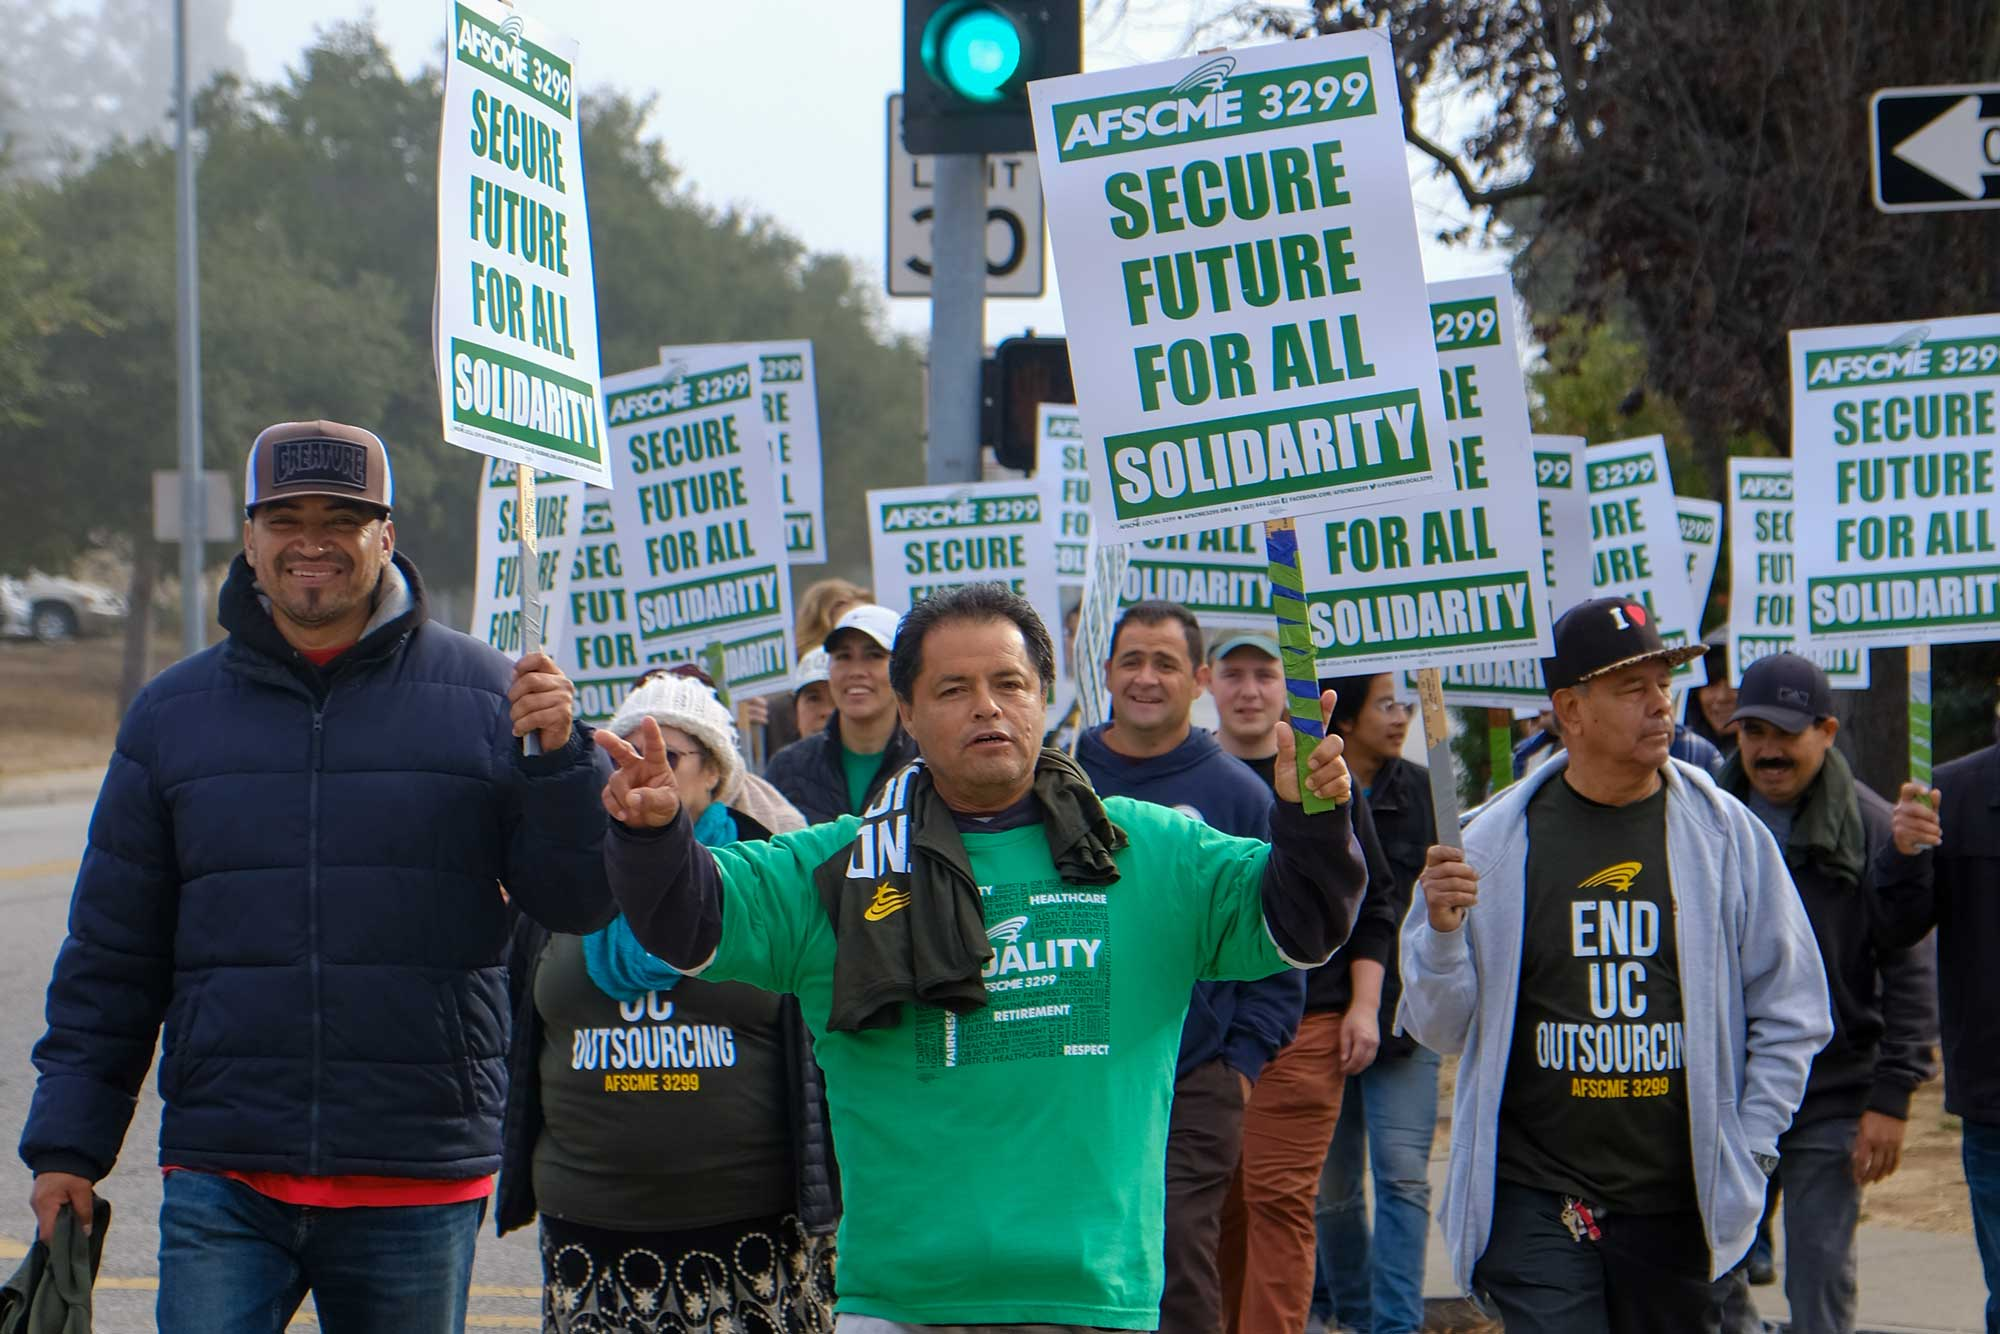 UC Workers Demand End to Outsourcing